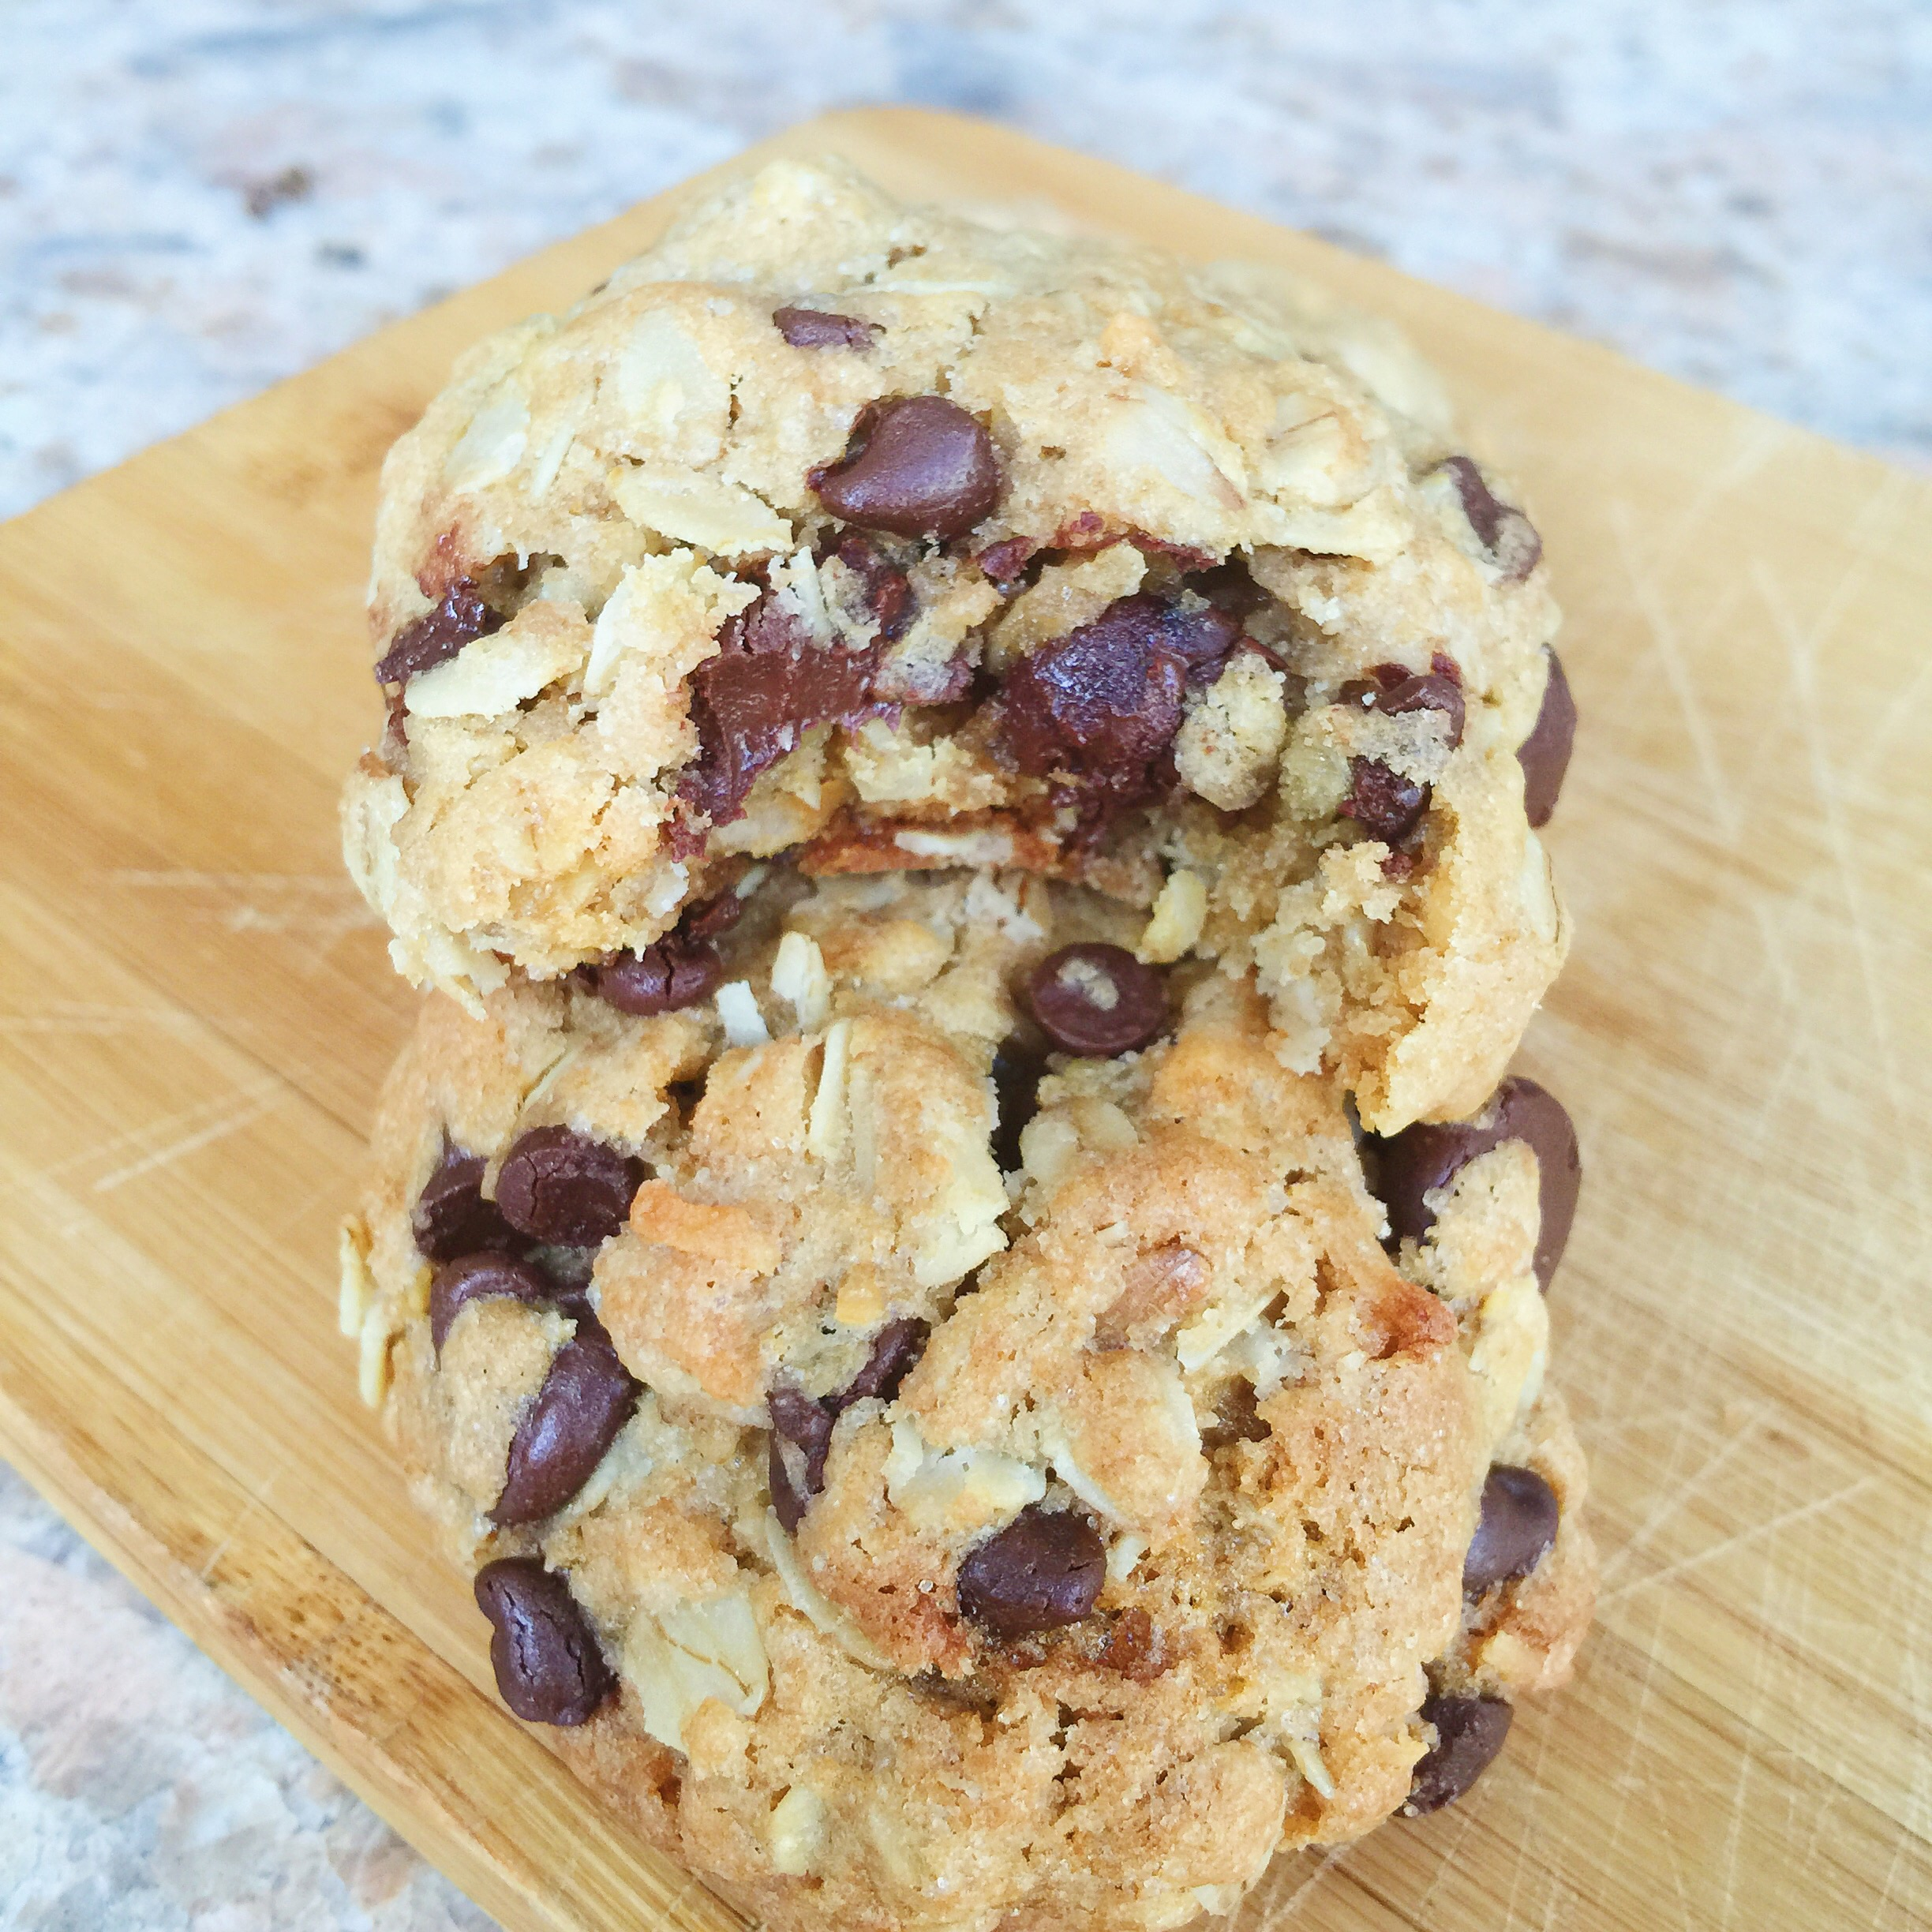 Oatmeal Coconut Chocolate Chip Cookies – Bake Broil and Blog